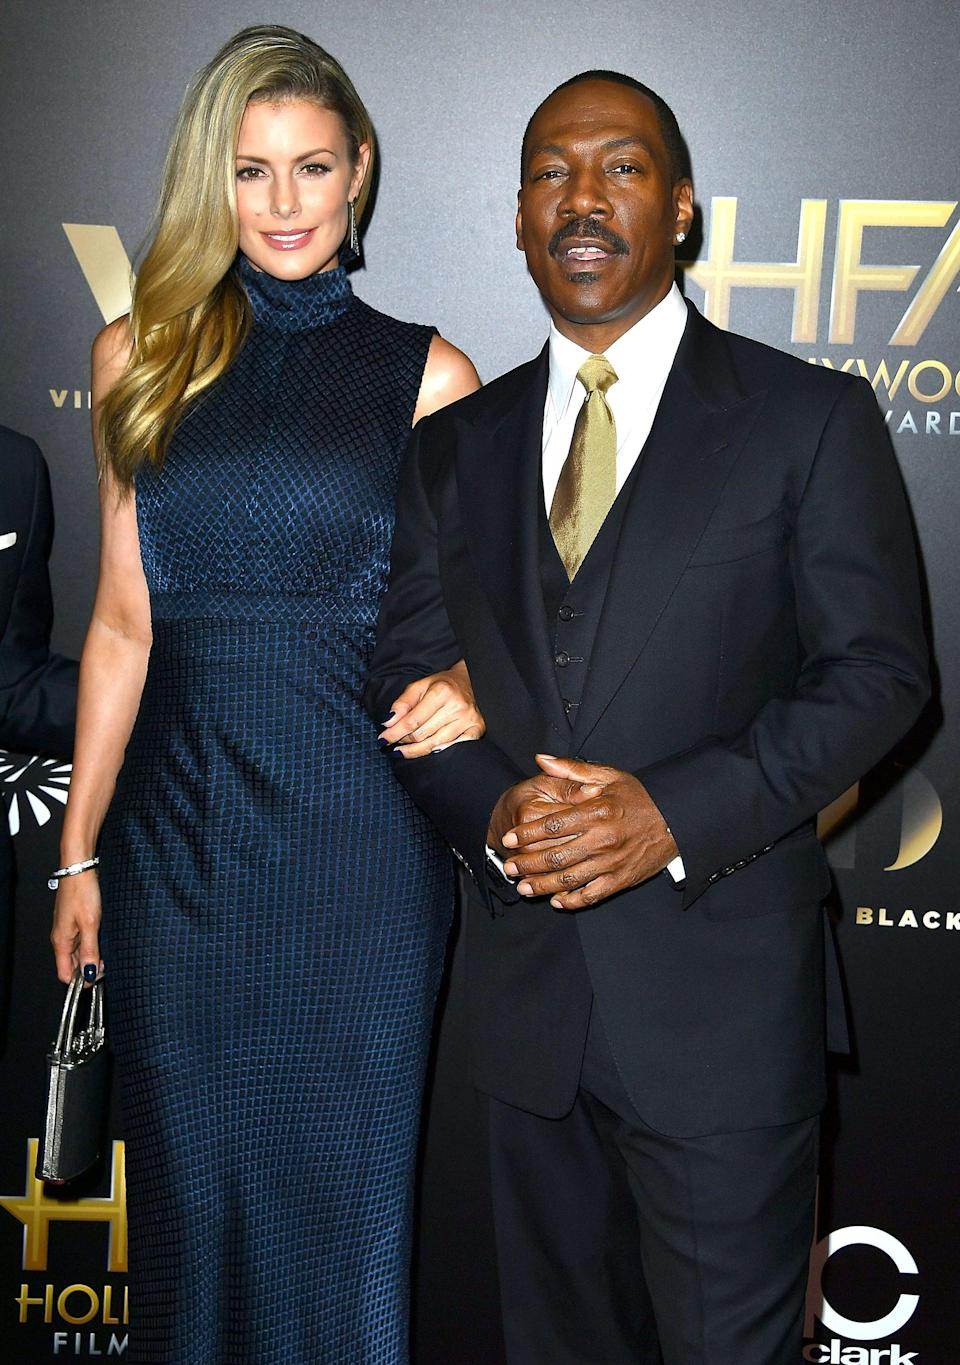 "<p><a href=""https://people.com/movies/is-eddie-murphy-engaged-paige-butcher/"" class=""link rapid-noclick-resp"" rel=""nofollow noopener"" target=""_blank"" data-ylk=""slk:The pair got engaged"">The pair got engaged</a> in September 2018. Eddie and Paige are already parents to a daughter named Izzy and a son named Max.</p>"